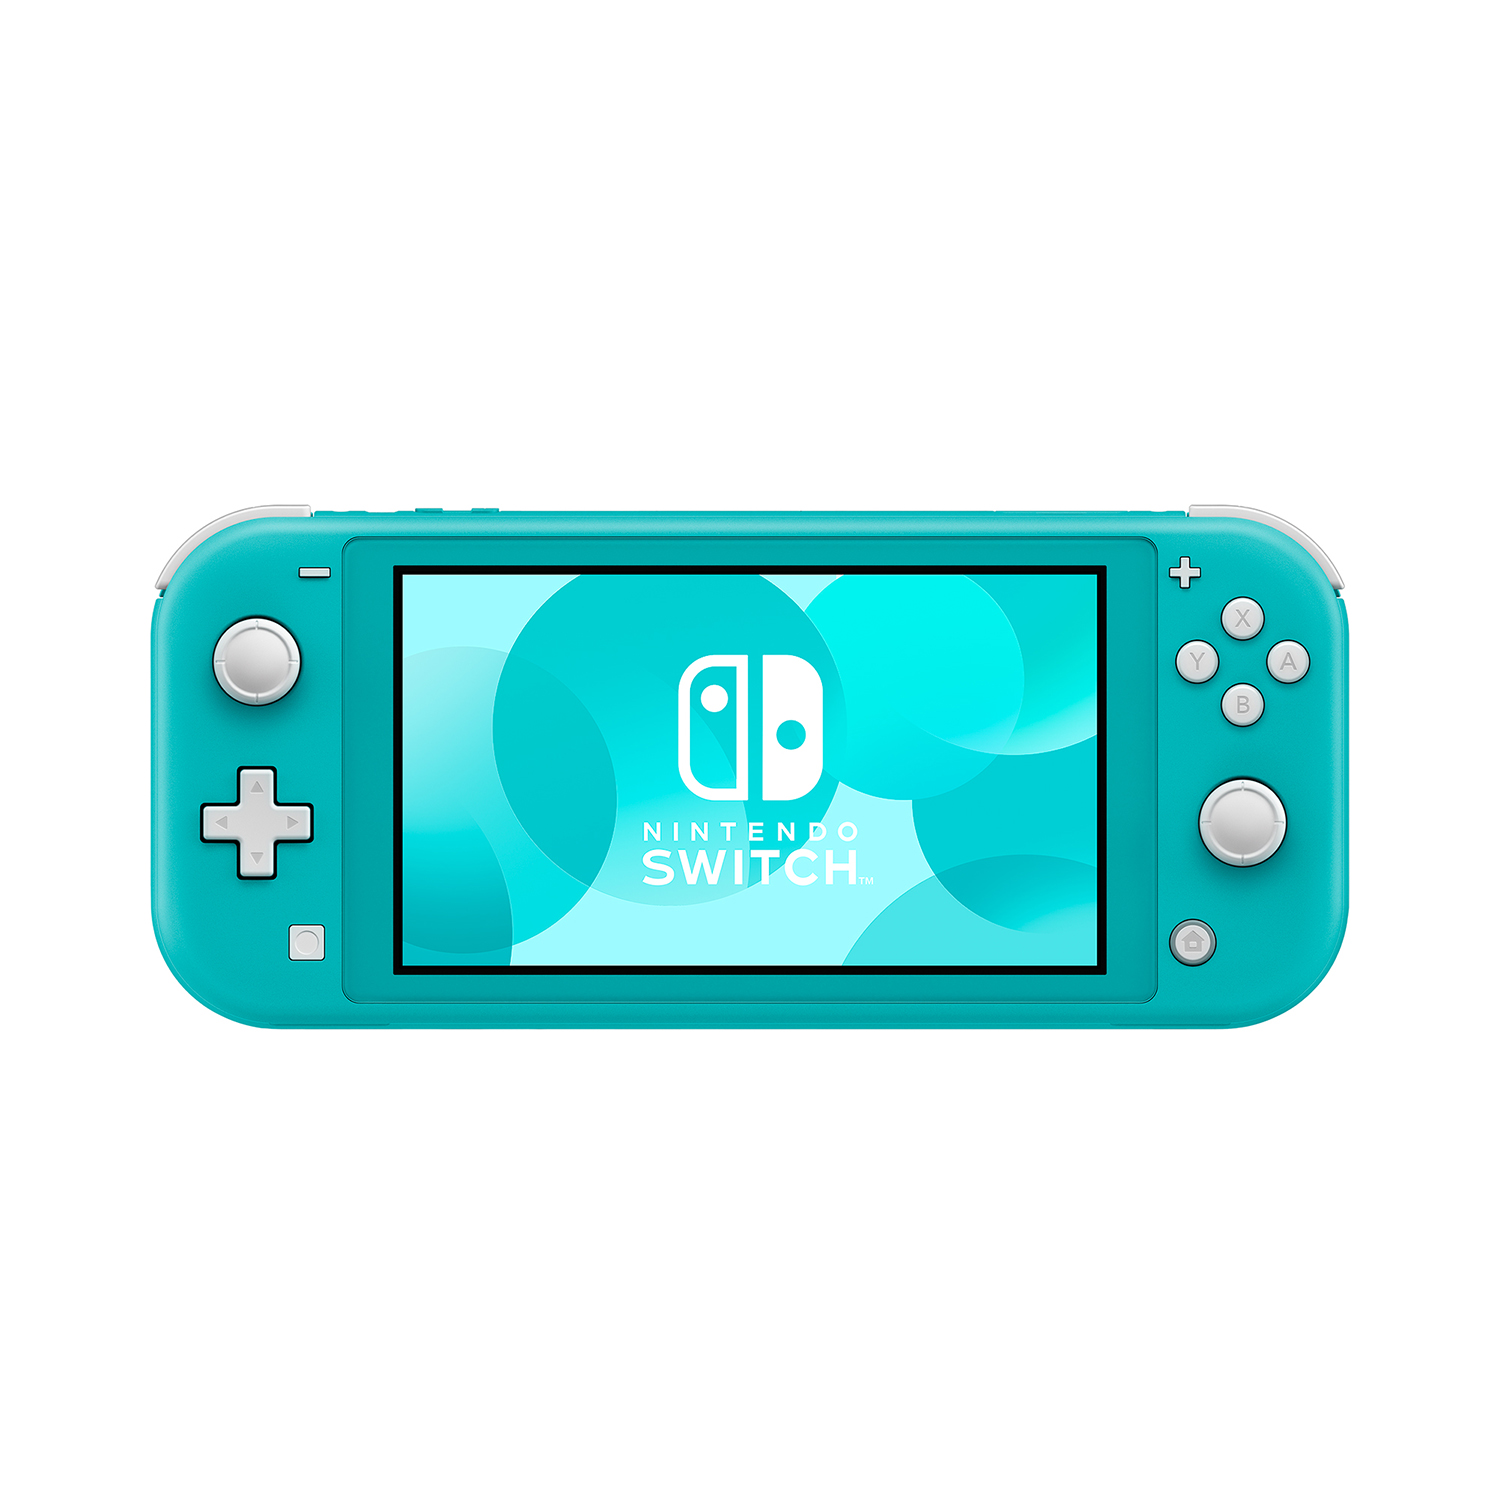 miniature 17 - Nintendo Switch Lite Console Bundle with Extra Warranty Protection